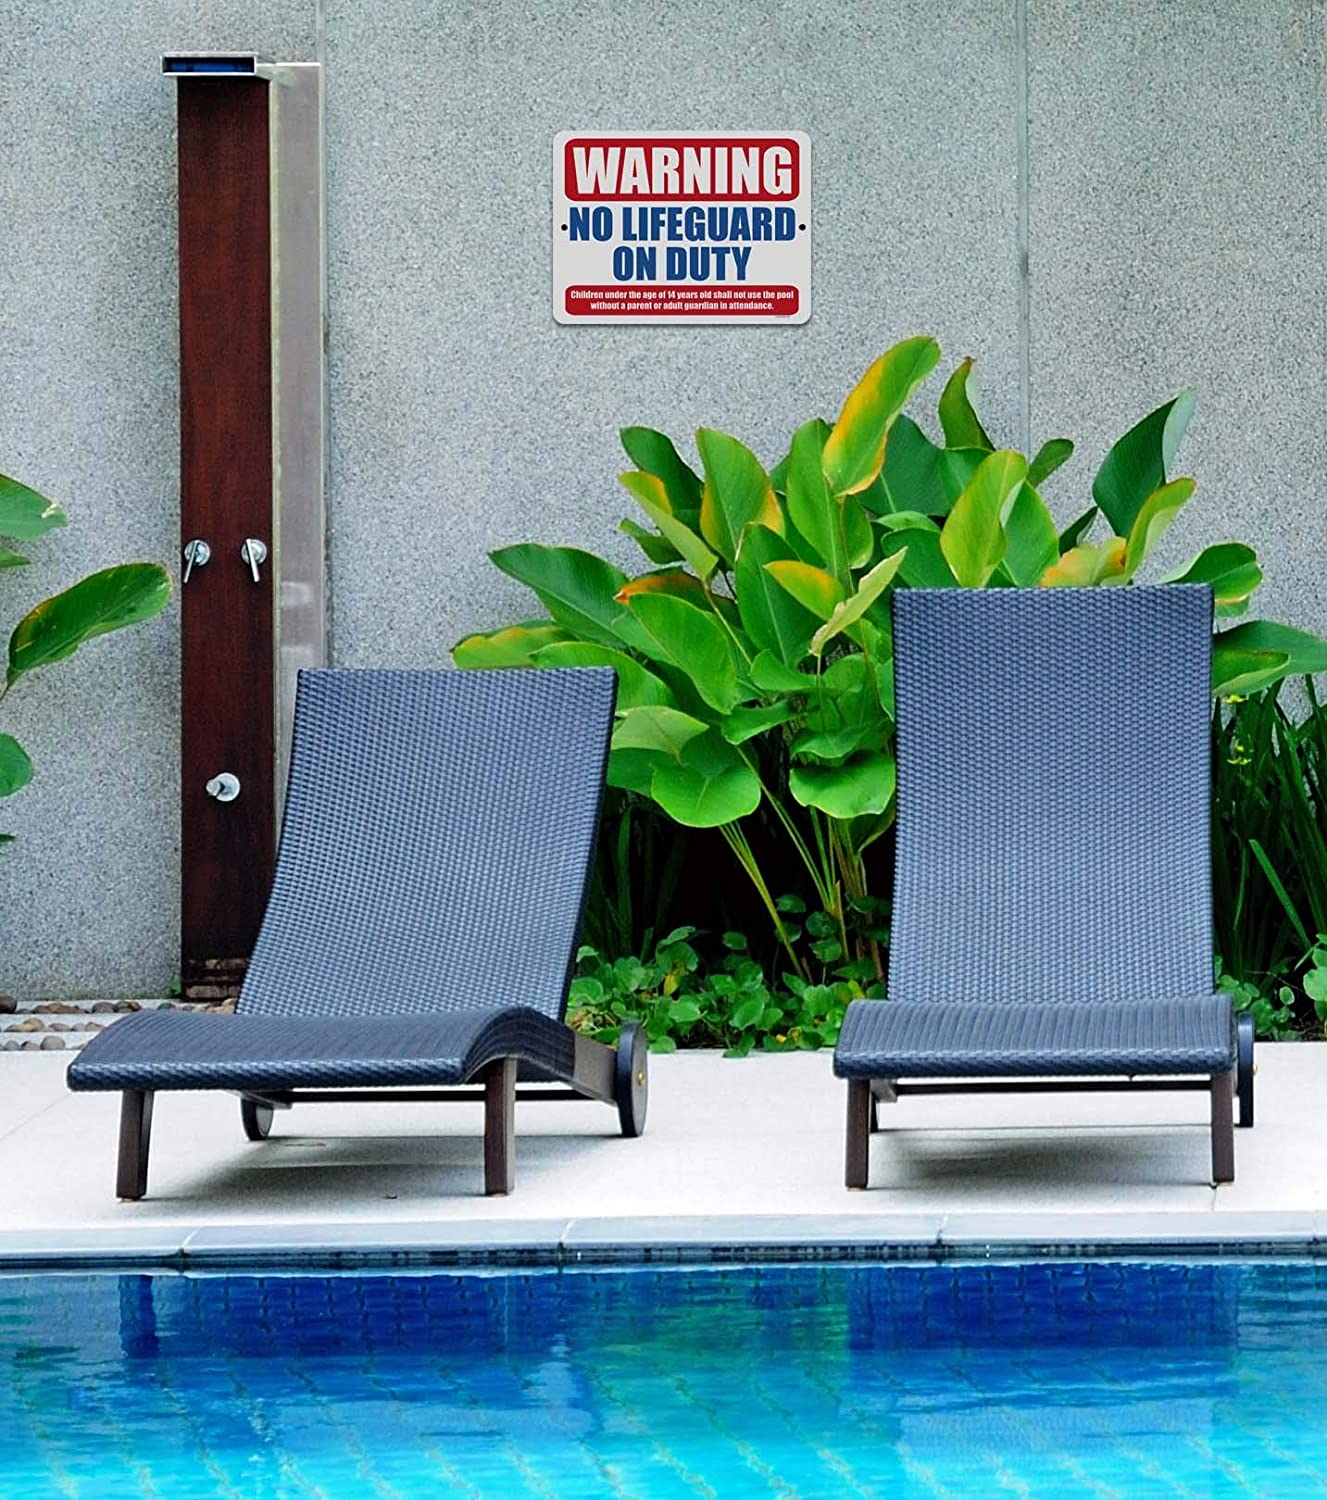 9 x 12 Inch Metal Aluminum Pool Signs Warning No Lifeguard on Duty Honey Dew Gifts Pool Decor Made in USA Swimming Pool Outdoor Signs